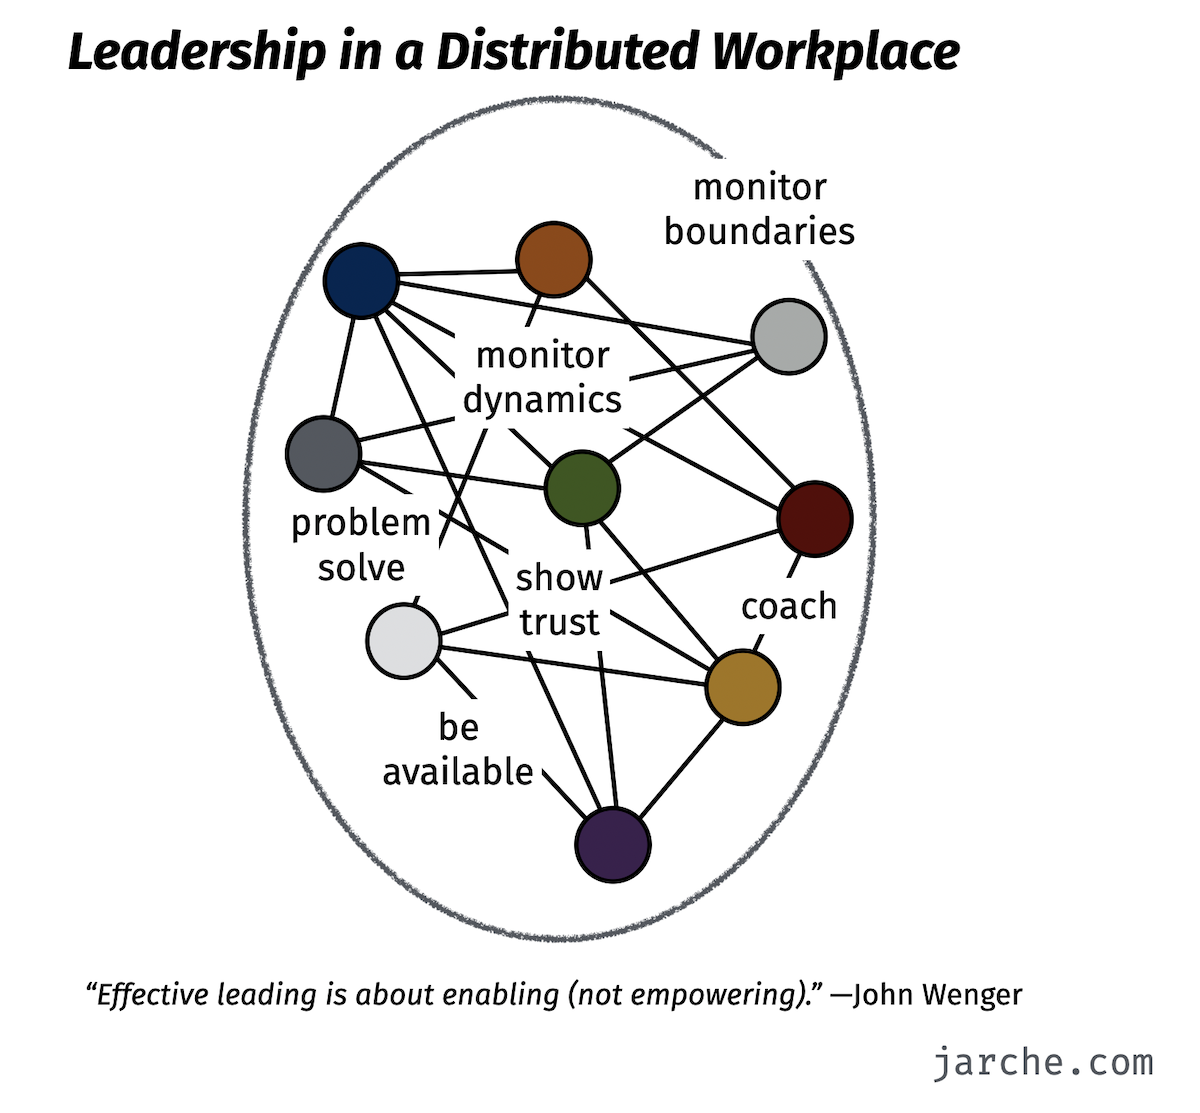 leadership for distributed work